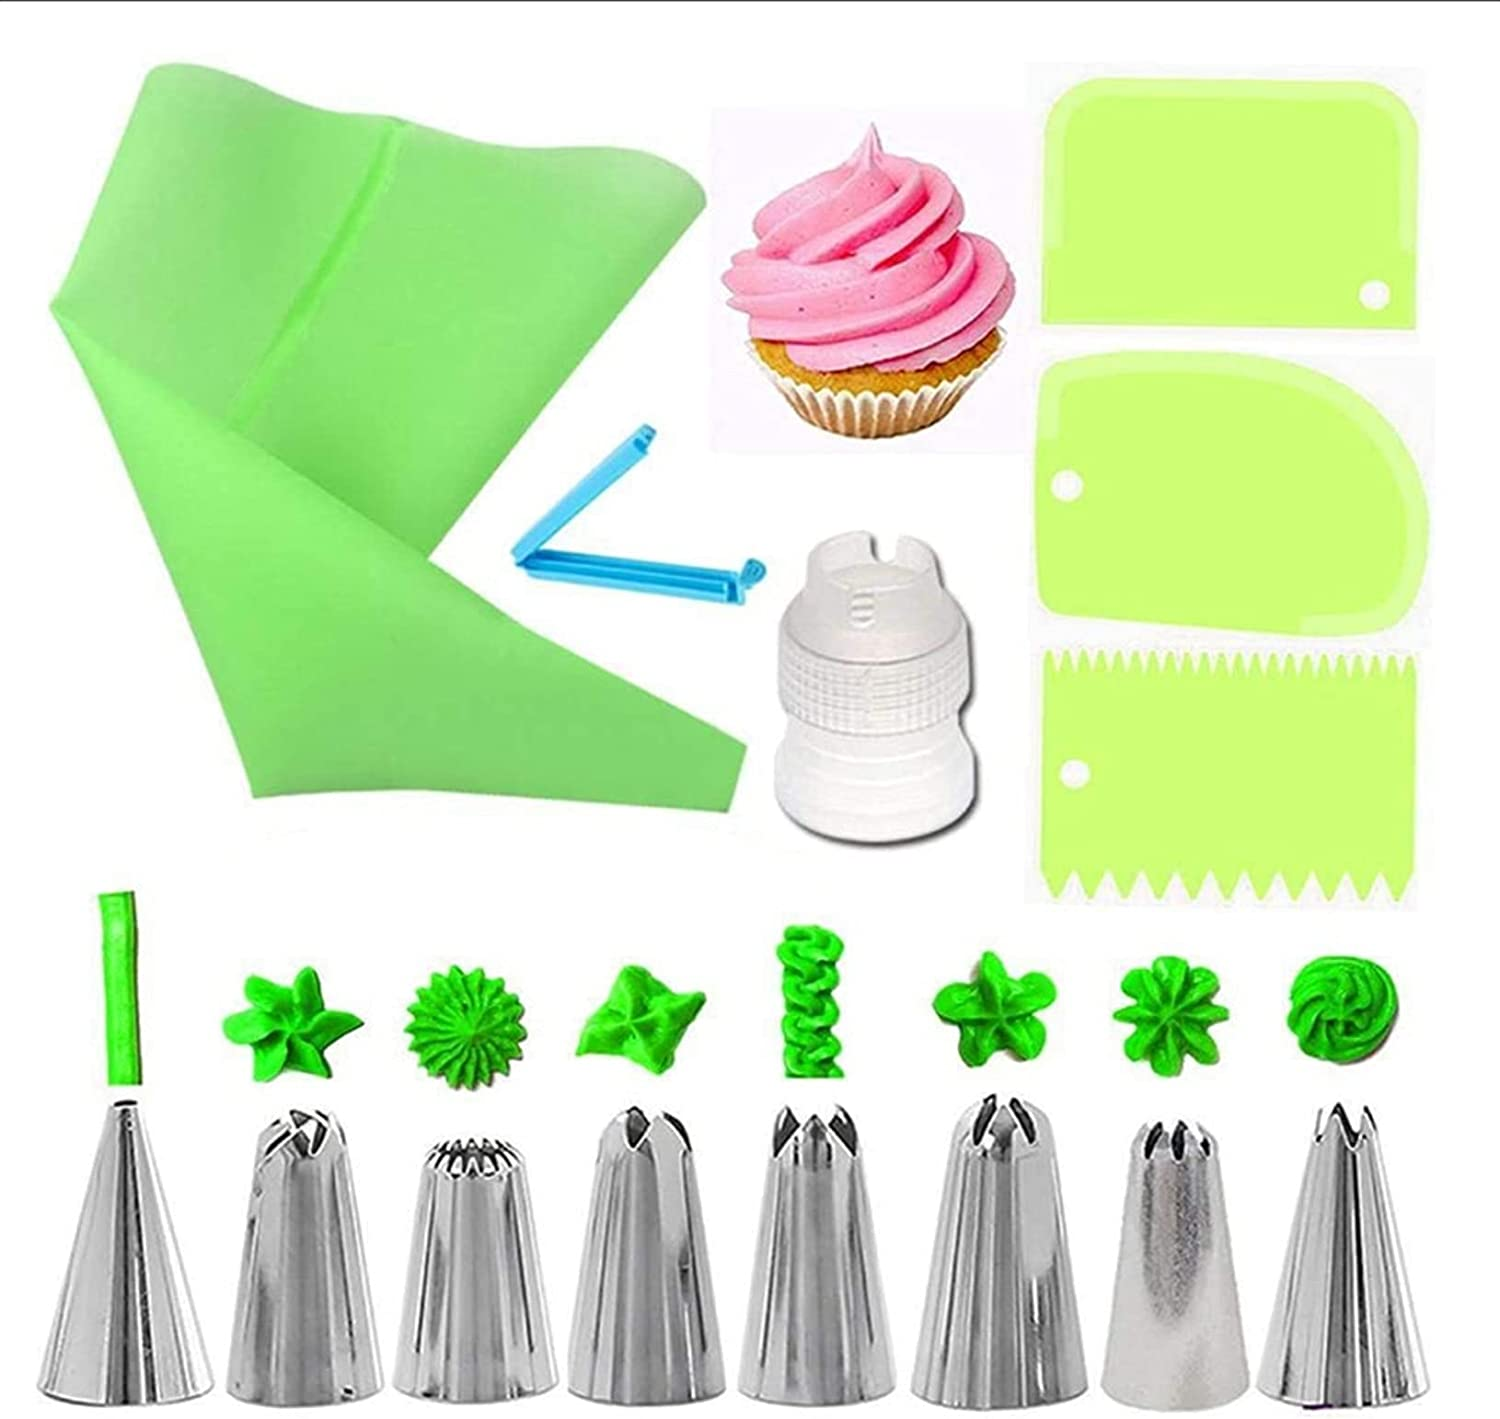 Piping Tips 14Pcs Set Reusable Pastry B Nozzles Seattle Mall Max 46% OFF Icing